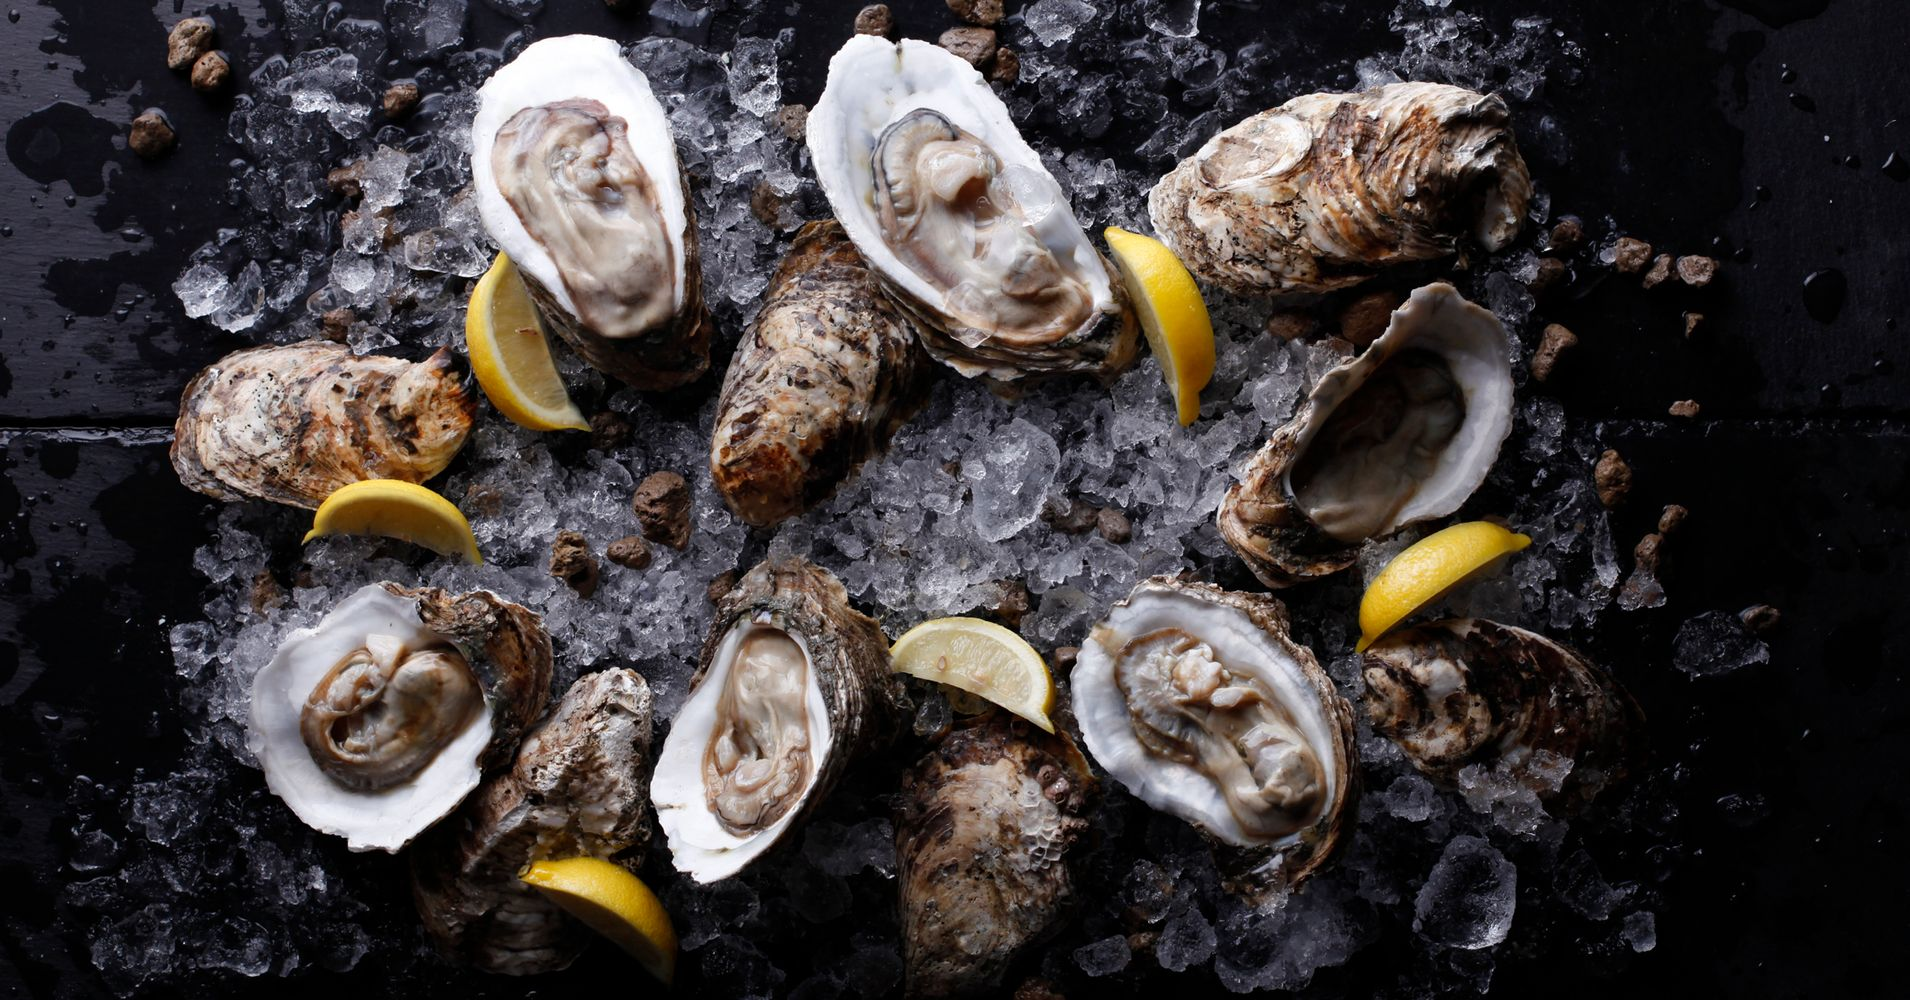 raw oysters are alive until you eat them in case you didn